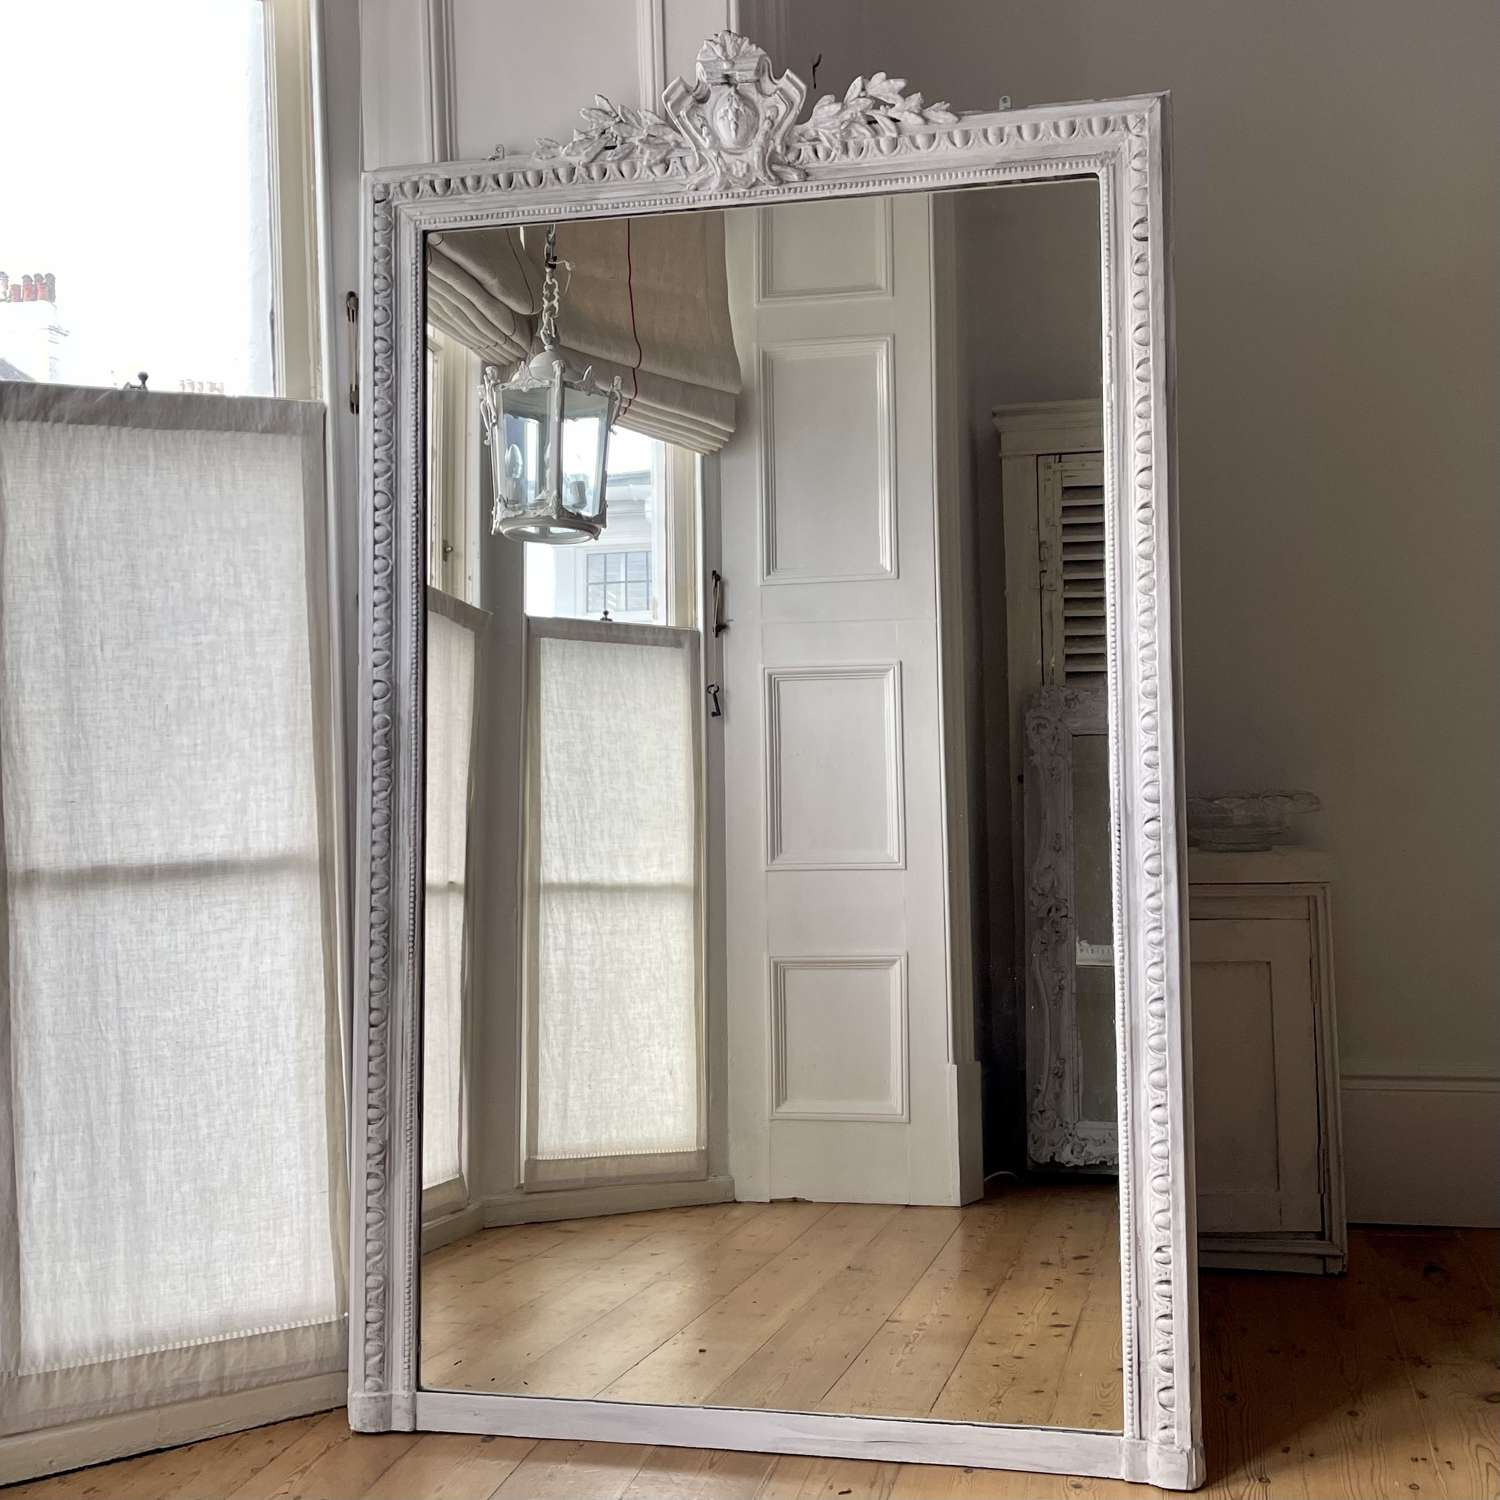 19th century Antique French leaner mirror